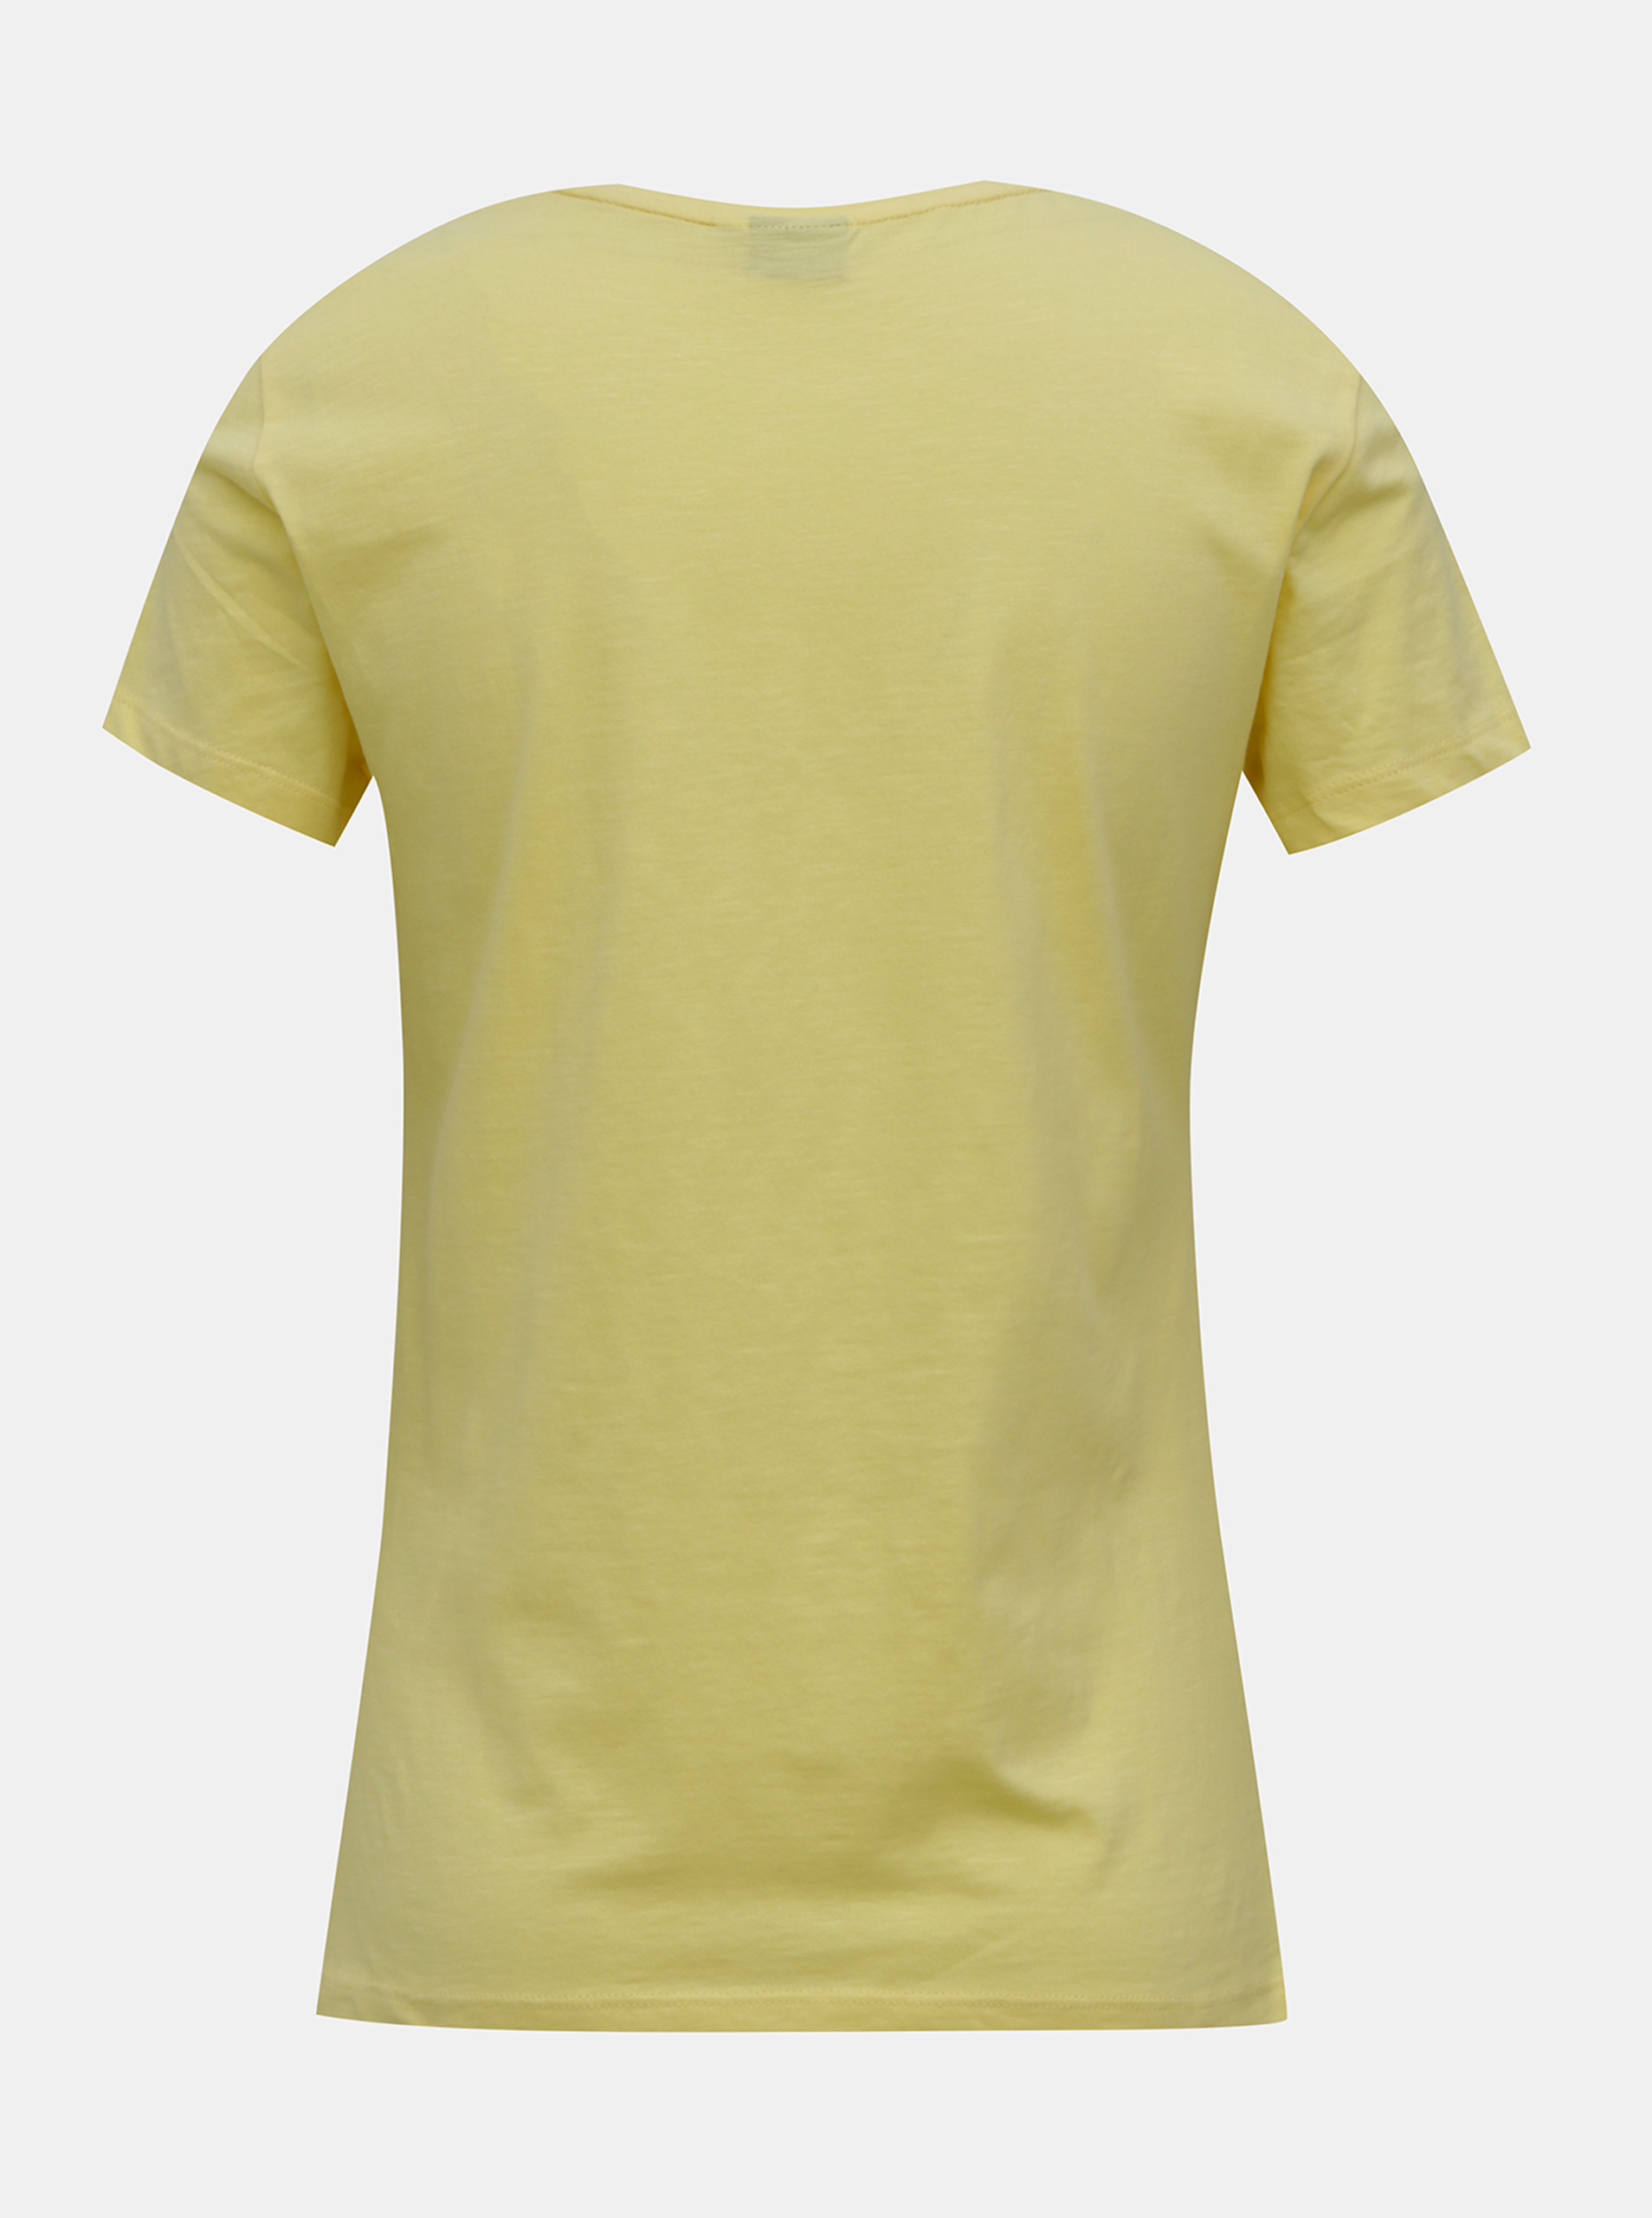 T-shirt gialla con stampa ONLY Peanuts